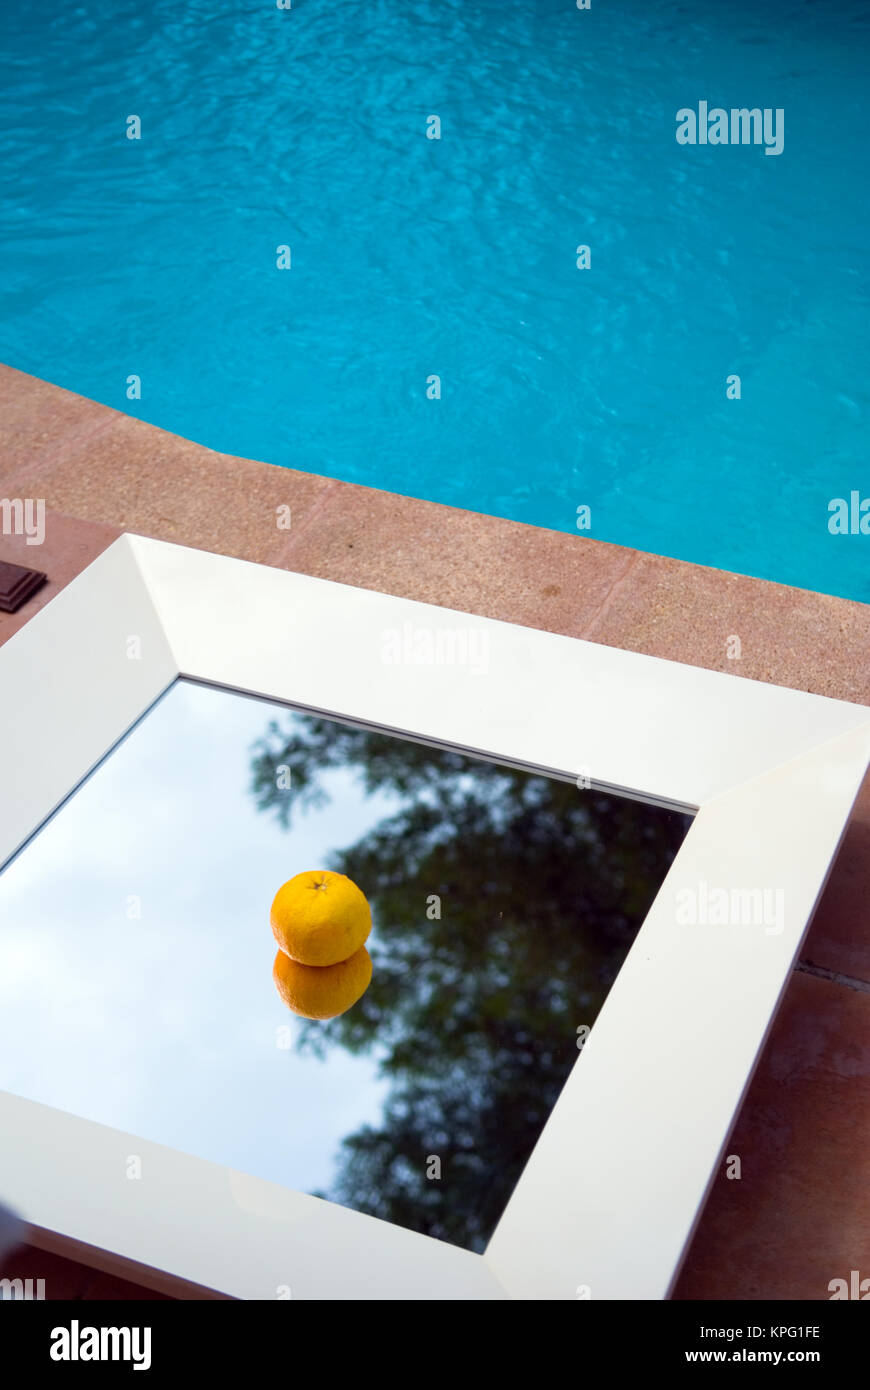 a single orange sits on a mirror table by the side of a swimming pool - Stock Image